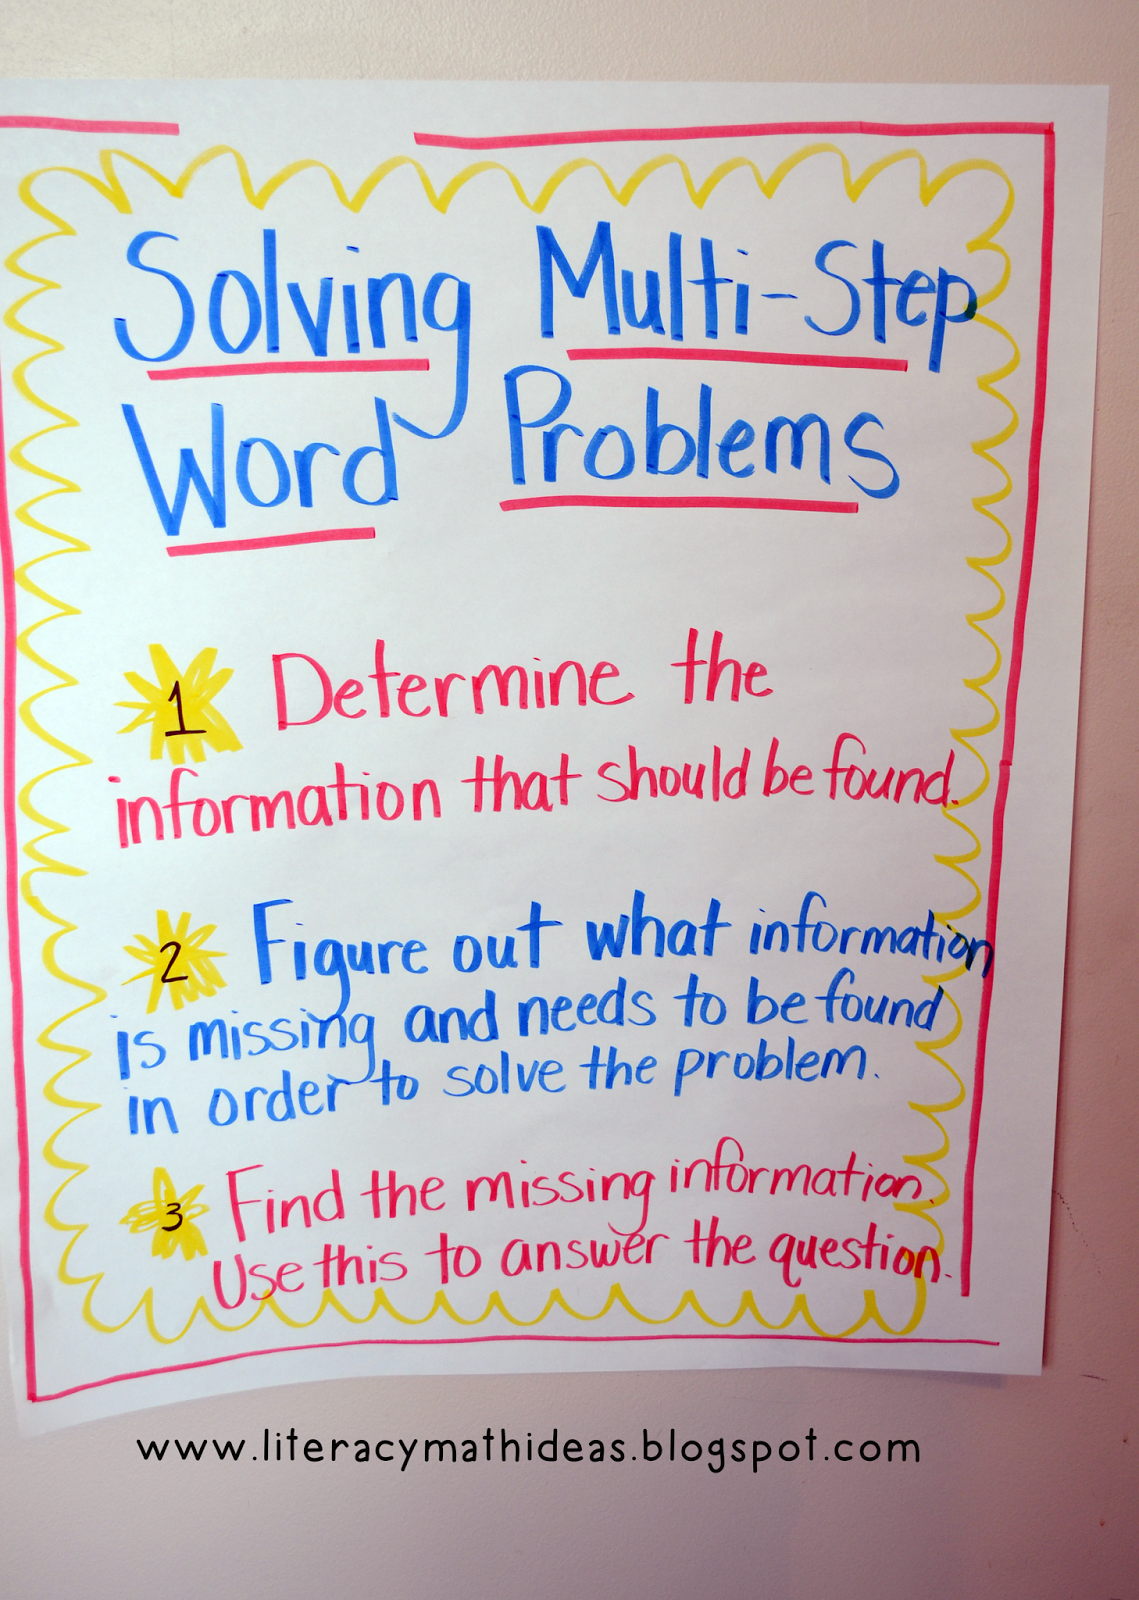 Literacy & Math Ideas: How to Solve Multi-Step Word Problems ...